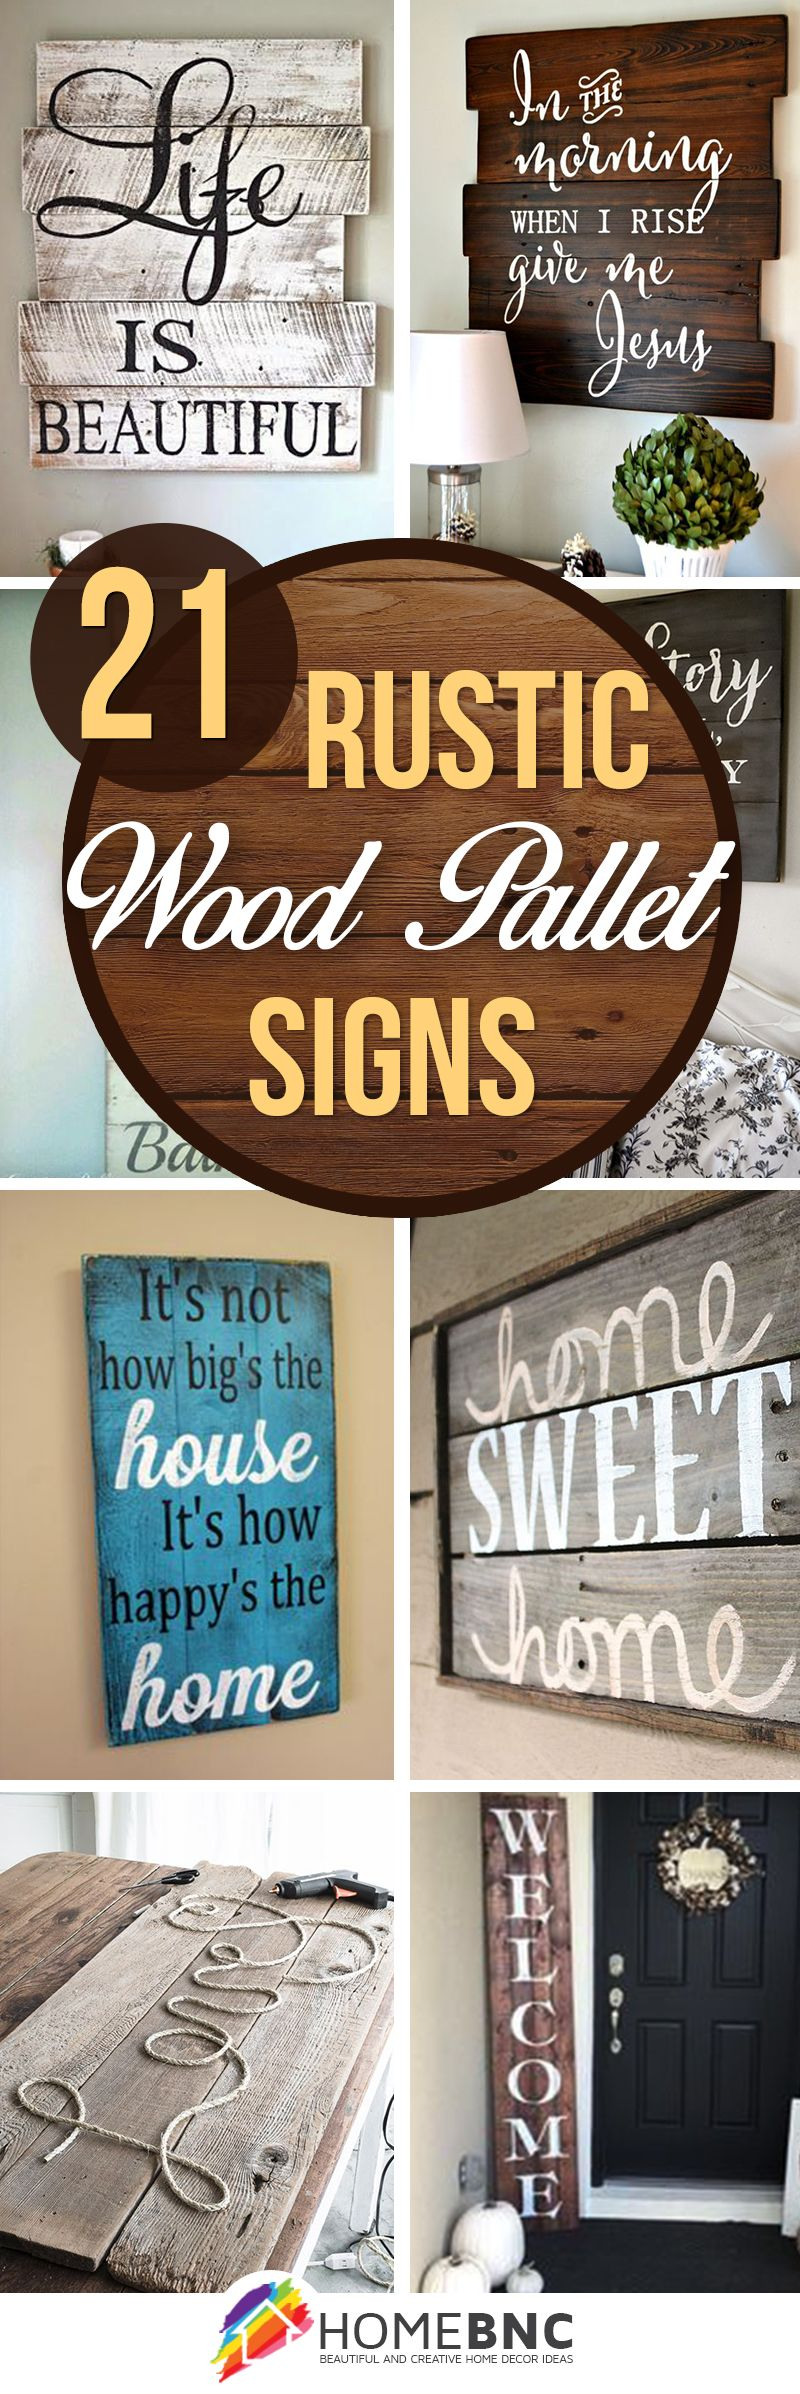 Wood signs are a hot new decorating trend and it's easy to see why they've become so popular. Find the best ideas and start decorating your… #woodsigns